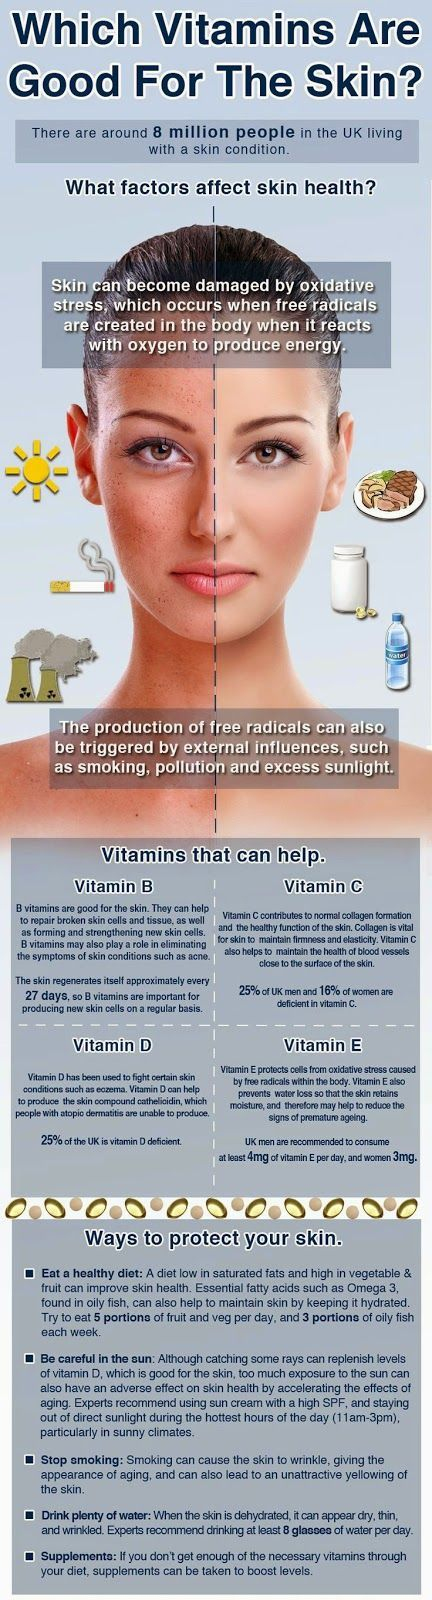 Do you know which vitamins are good for the skin and other steps you can take to protect you skin from damage